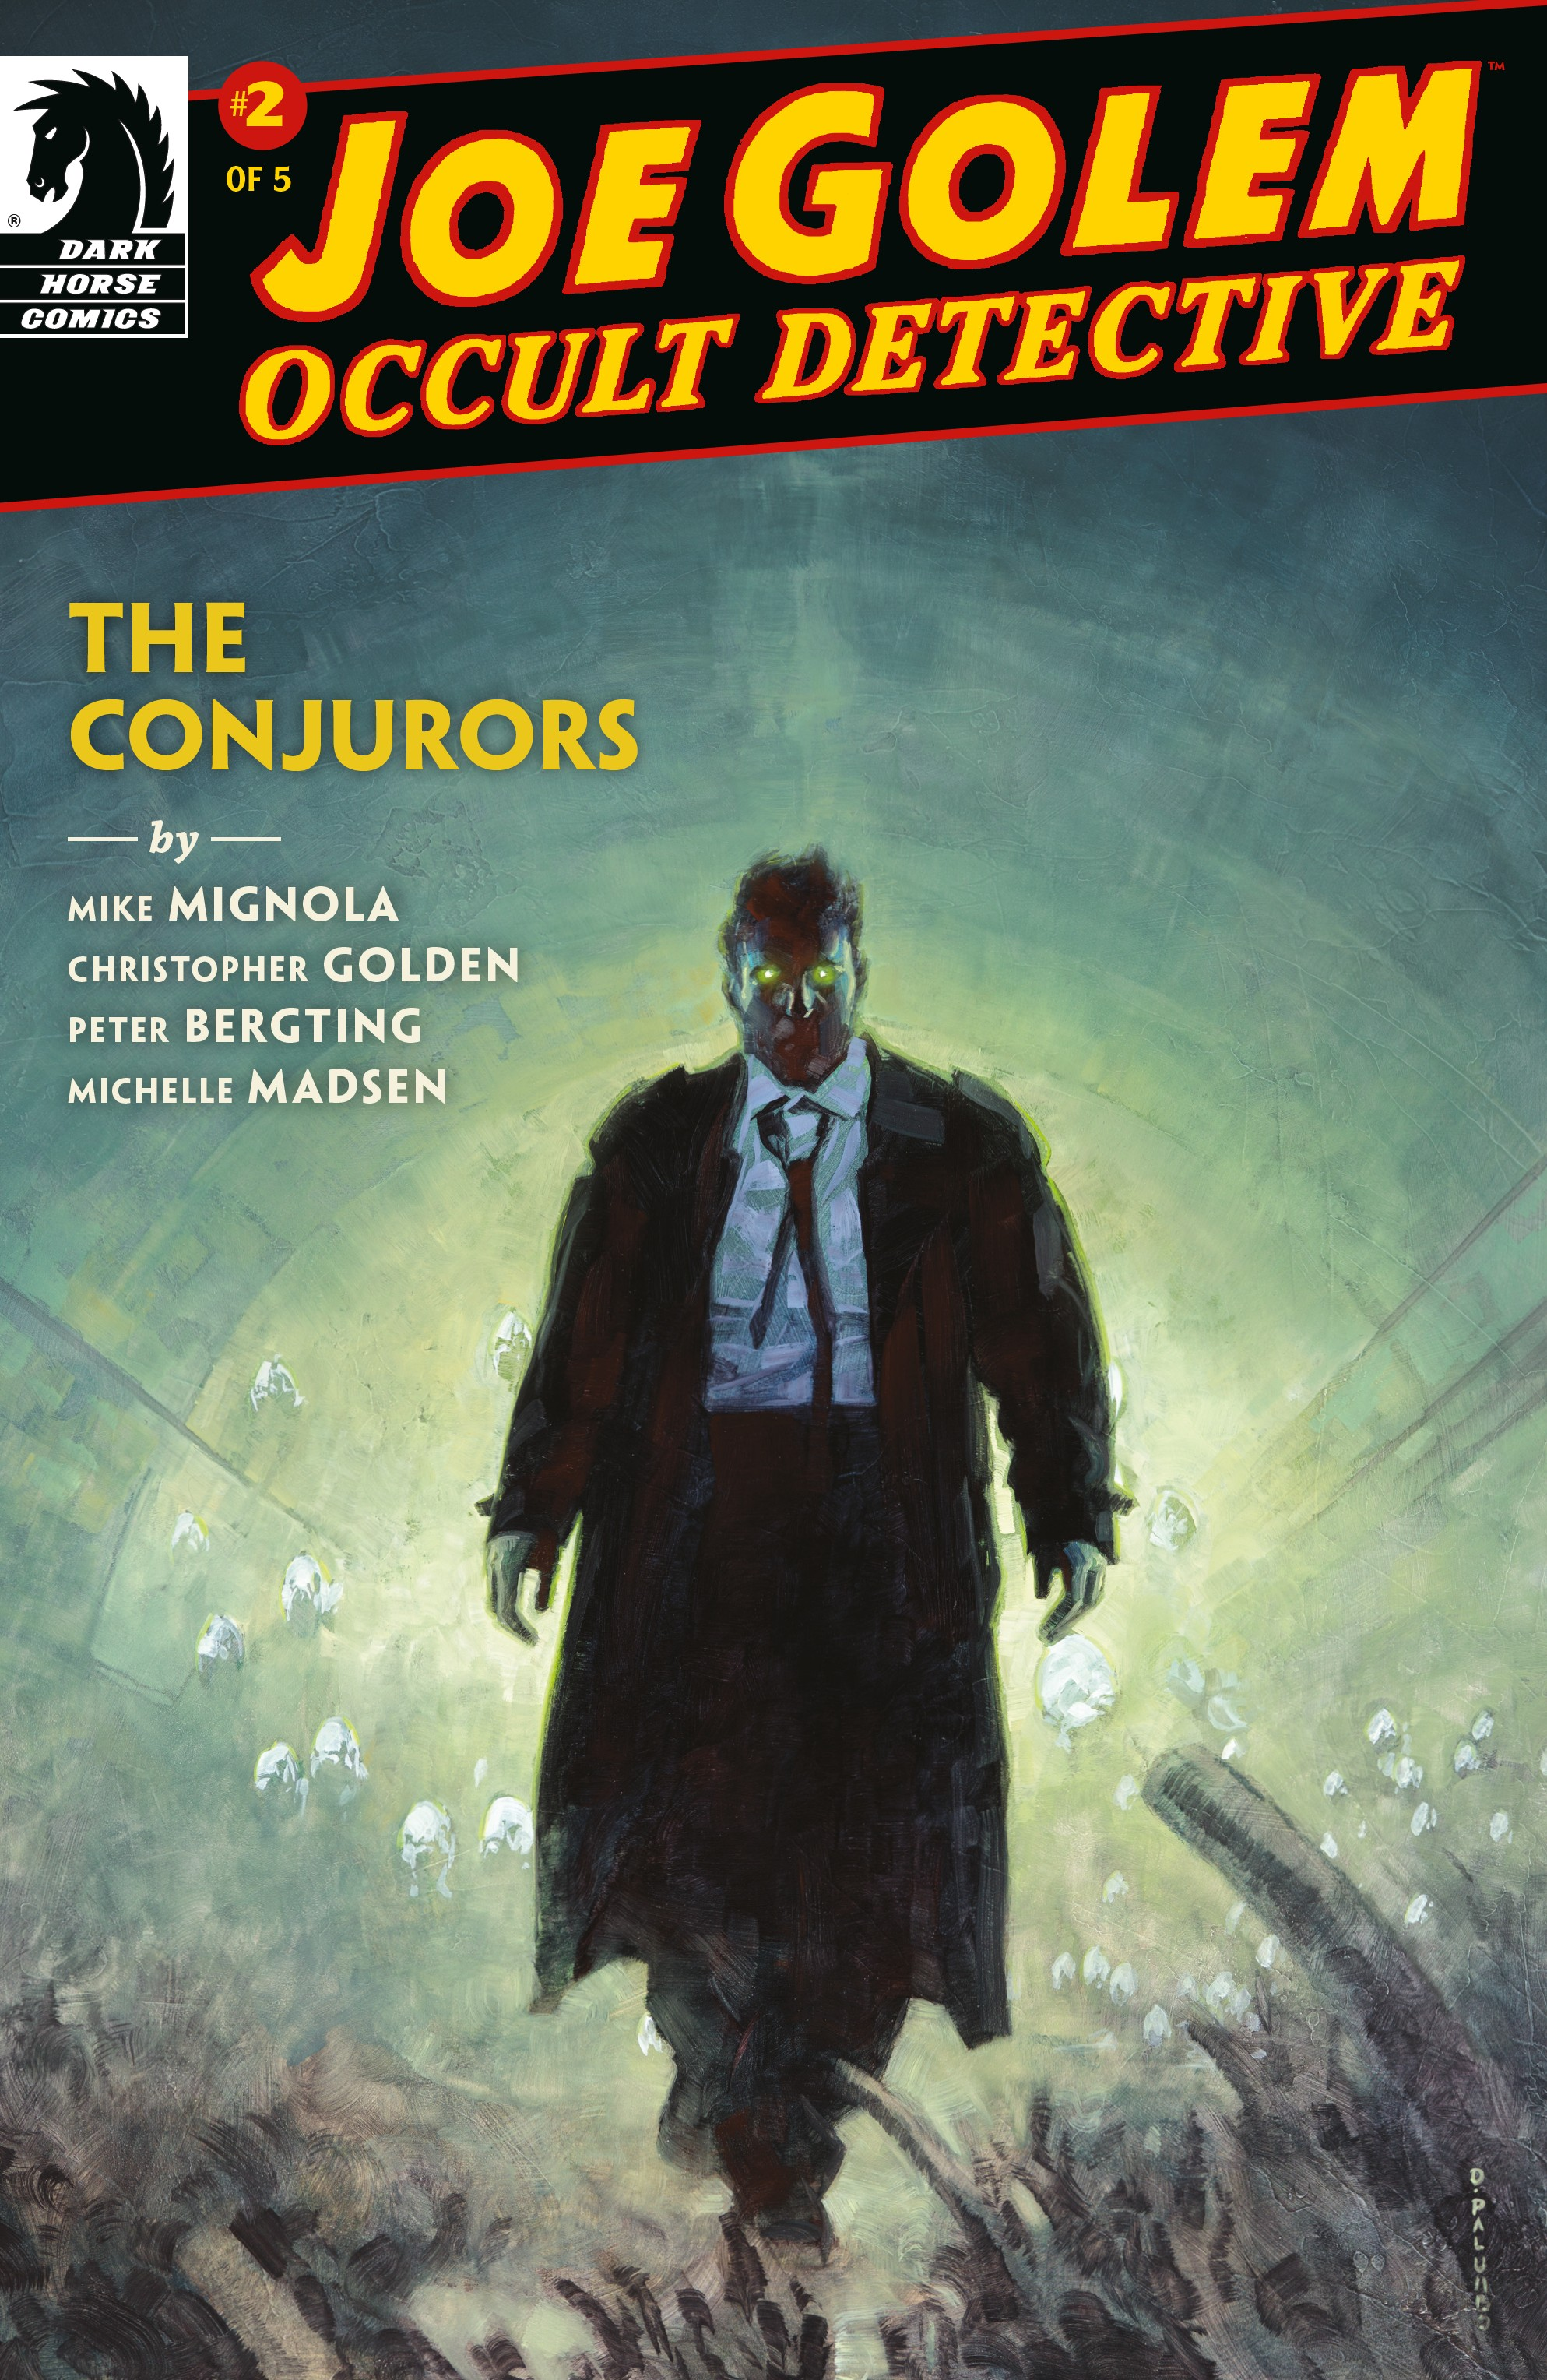 Joe Golem: Occult Detective�The Conjurors (2019-): Chapter 2 - Page 1